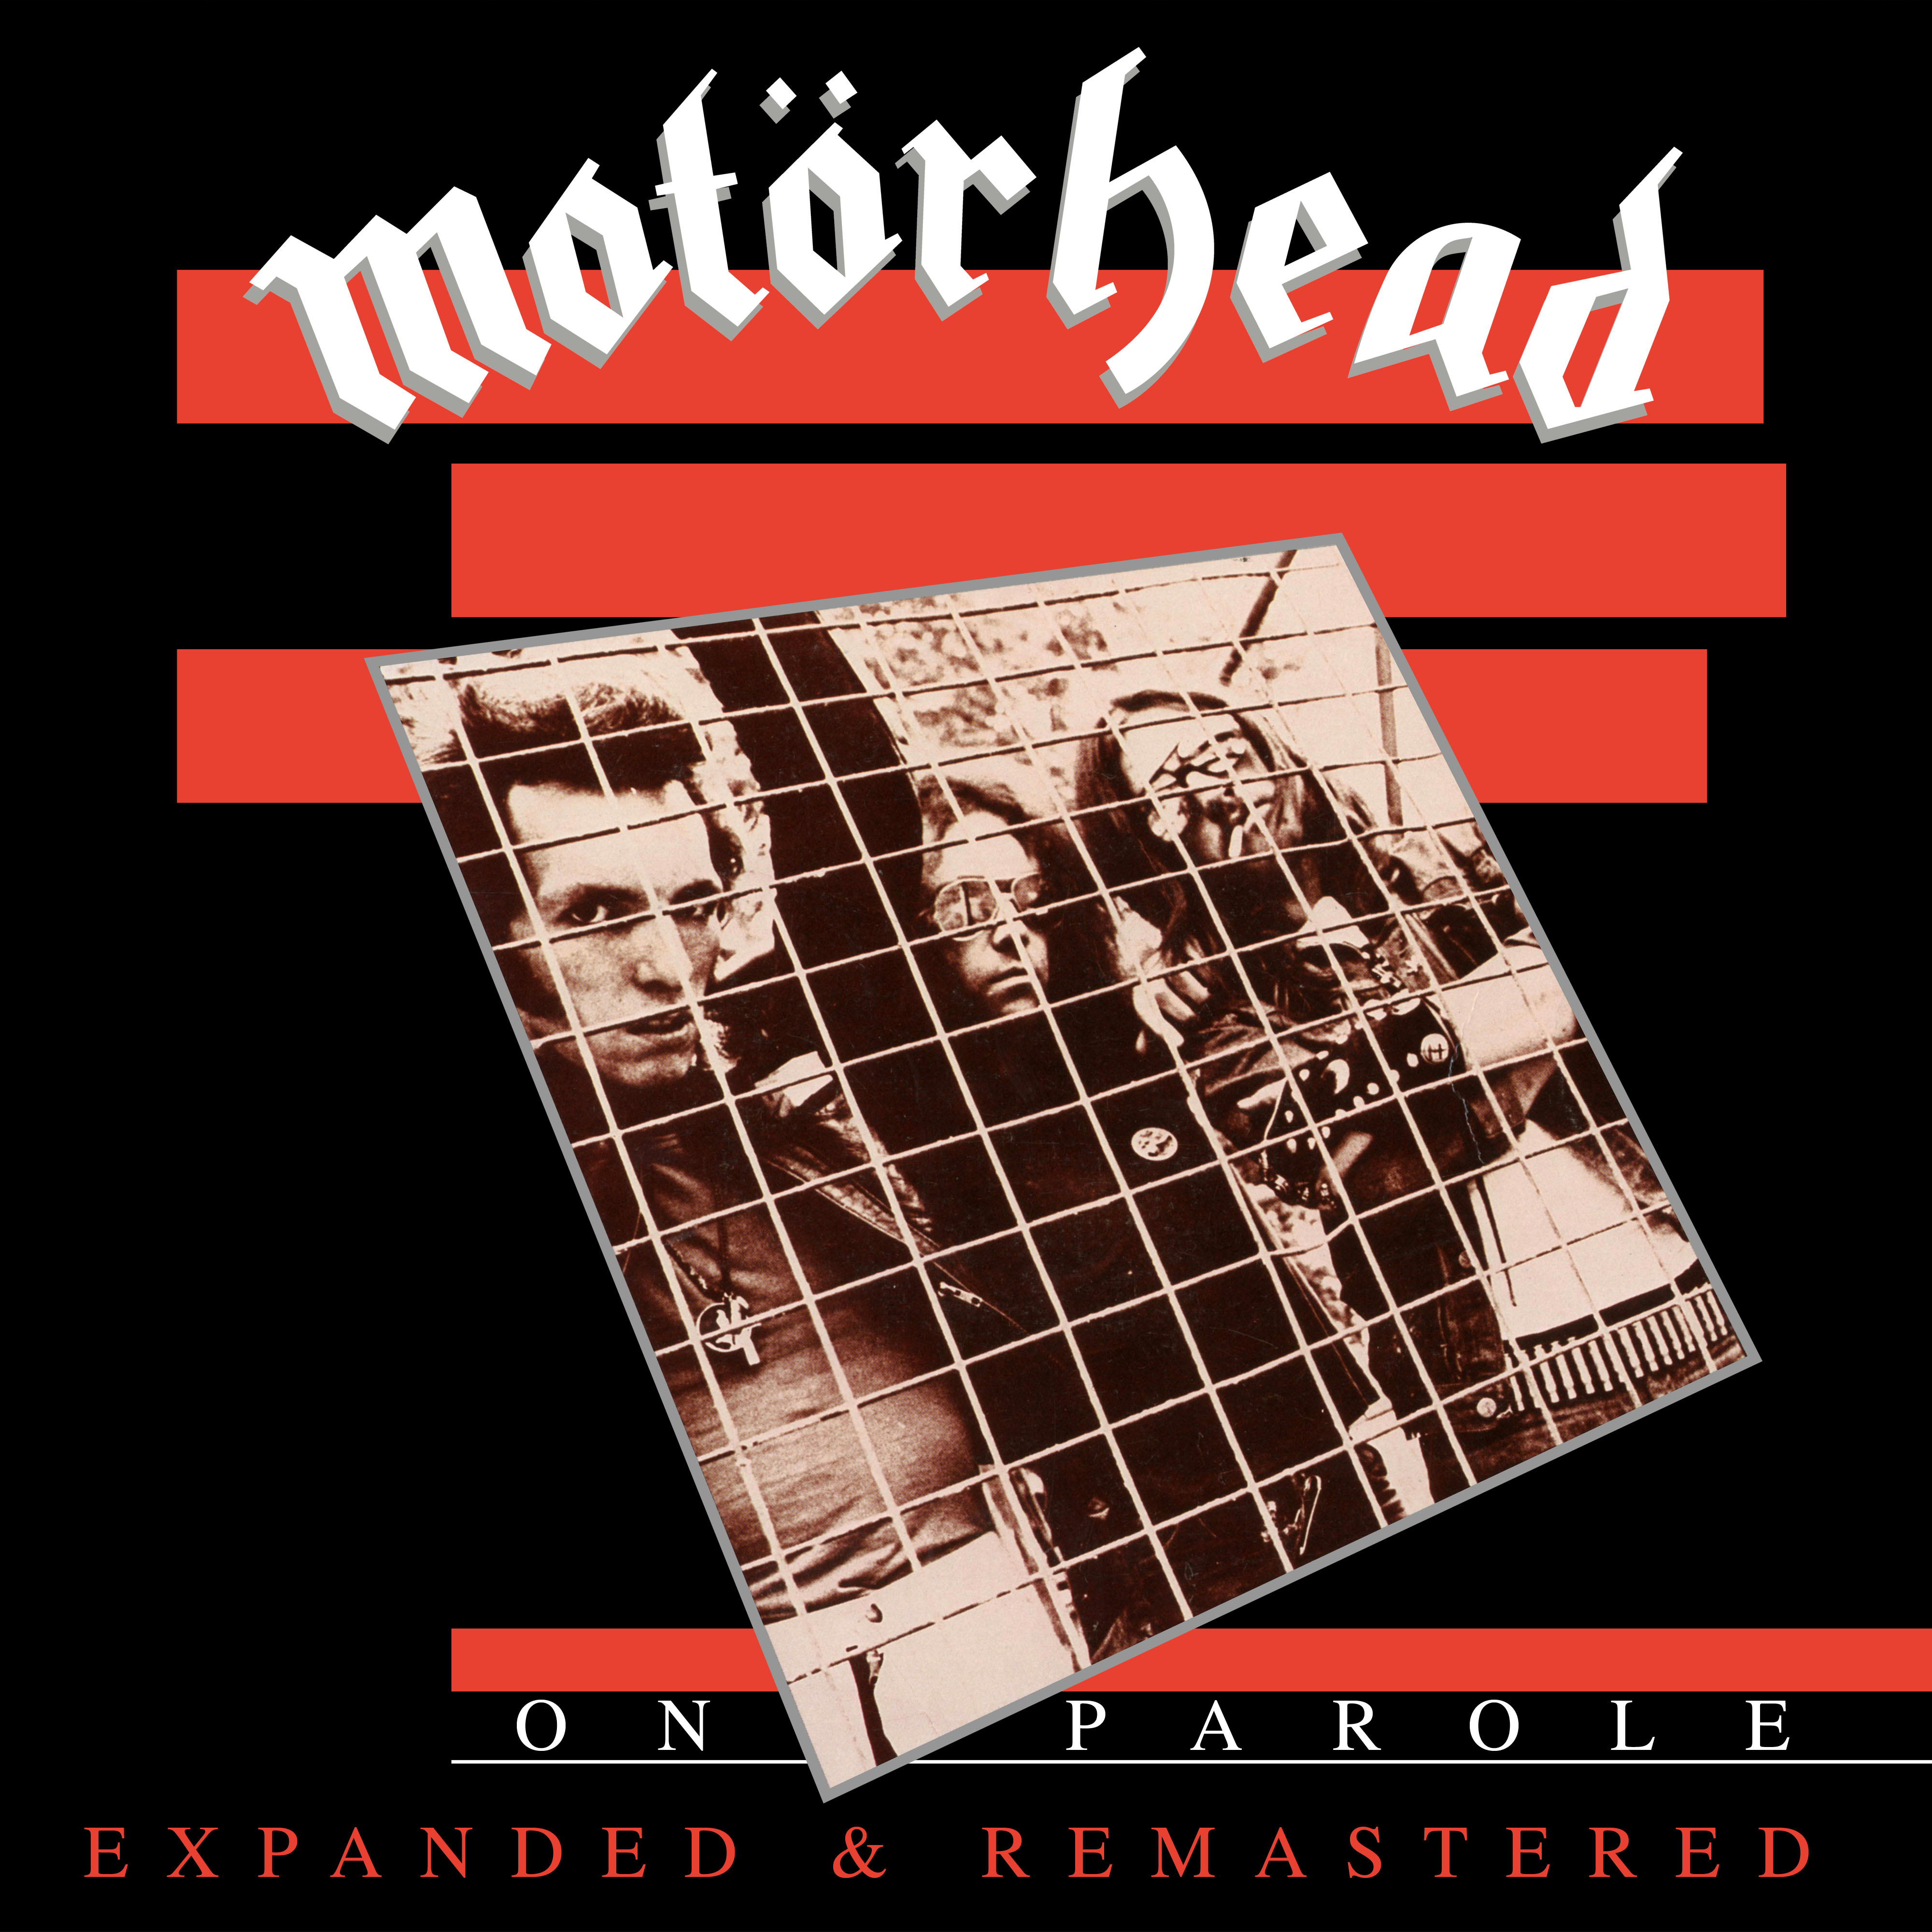 Motorhead - On Parole (Expanded and Remastered) [RSD BF 2020]